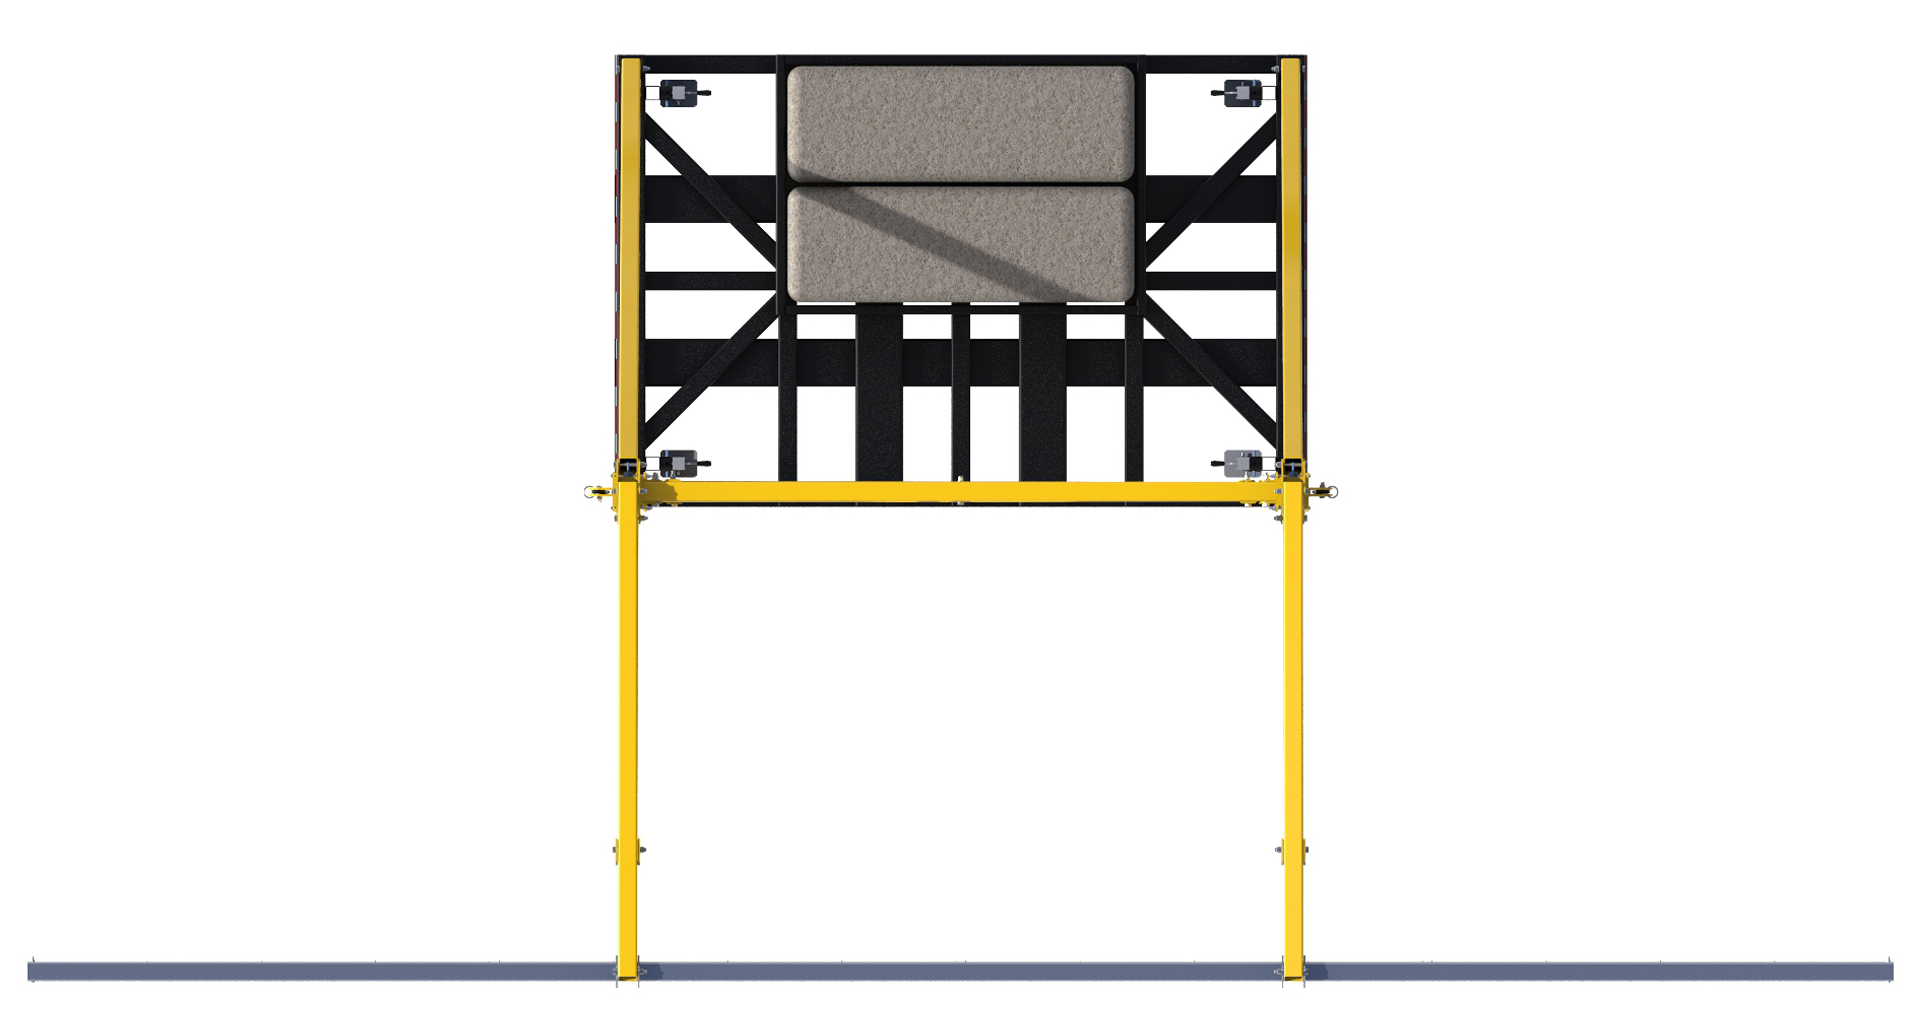 FlexiGuard Counterweighted Overhead 42 ft. Rail Fall Arrest System, 22 ft. Ht., Counterweights Included, Top View